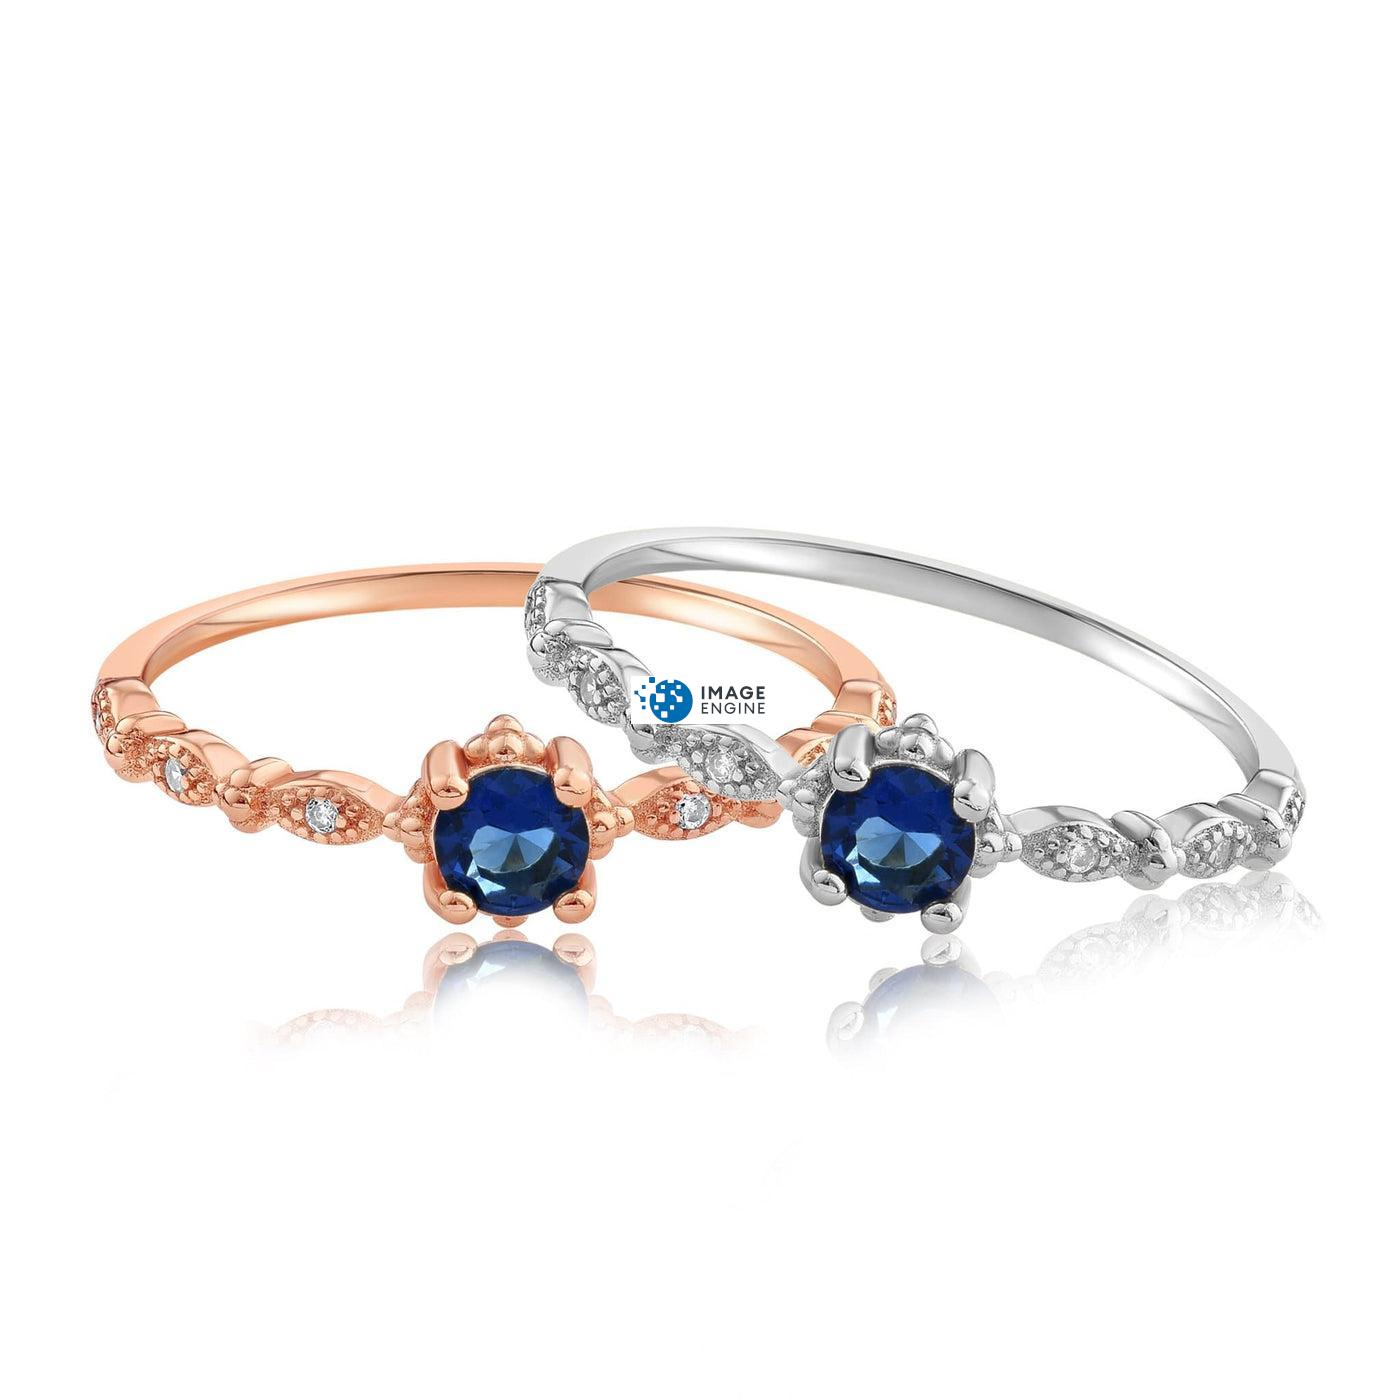 Garen Ring Blue Gemstone - Front View Side by Side - 18K Rose Gold Vermeil and 925 Sterling Silver